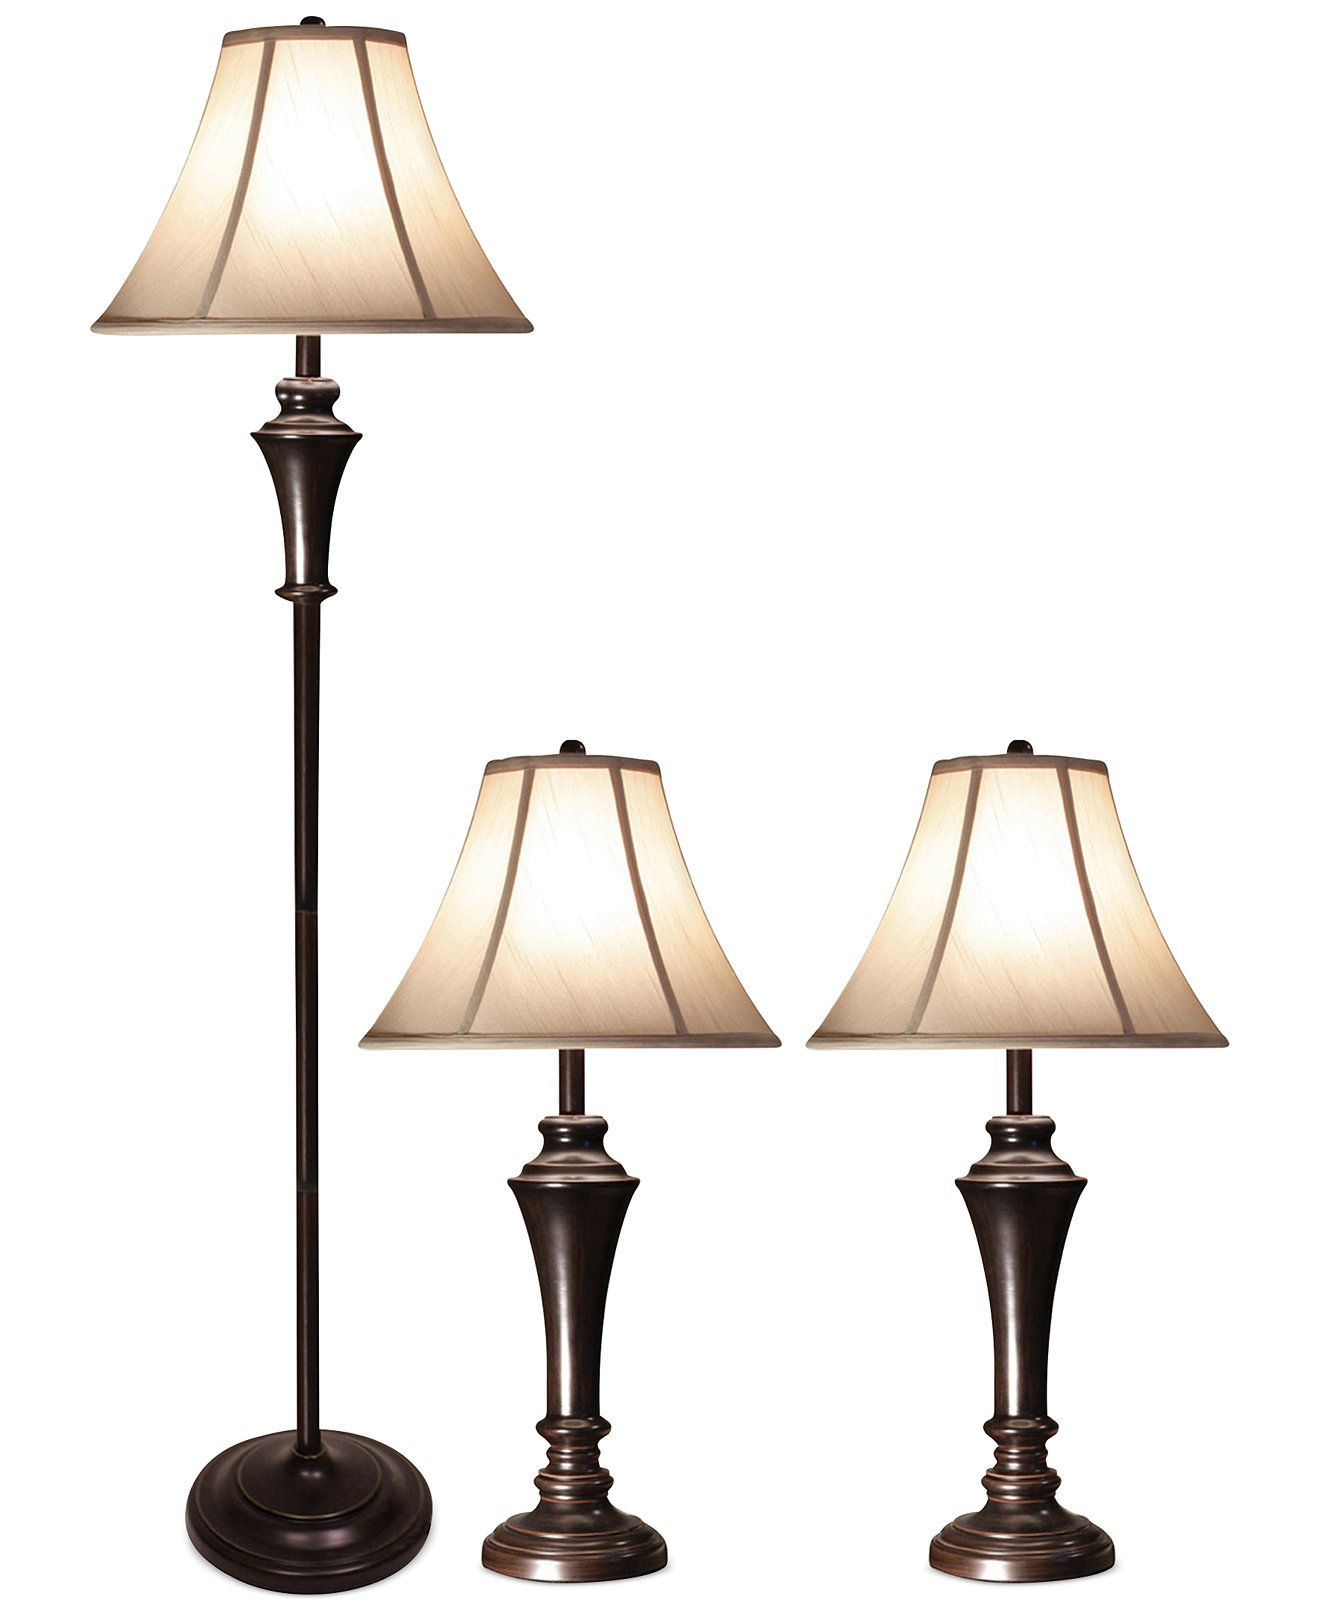 aged bronze steel set of 3 2 table lamps and 1 floor lamp